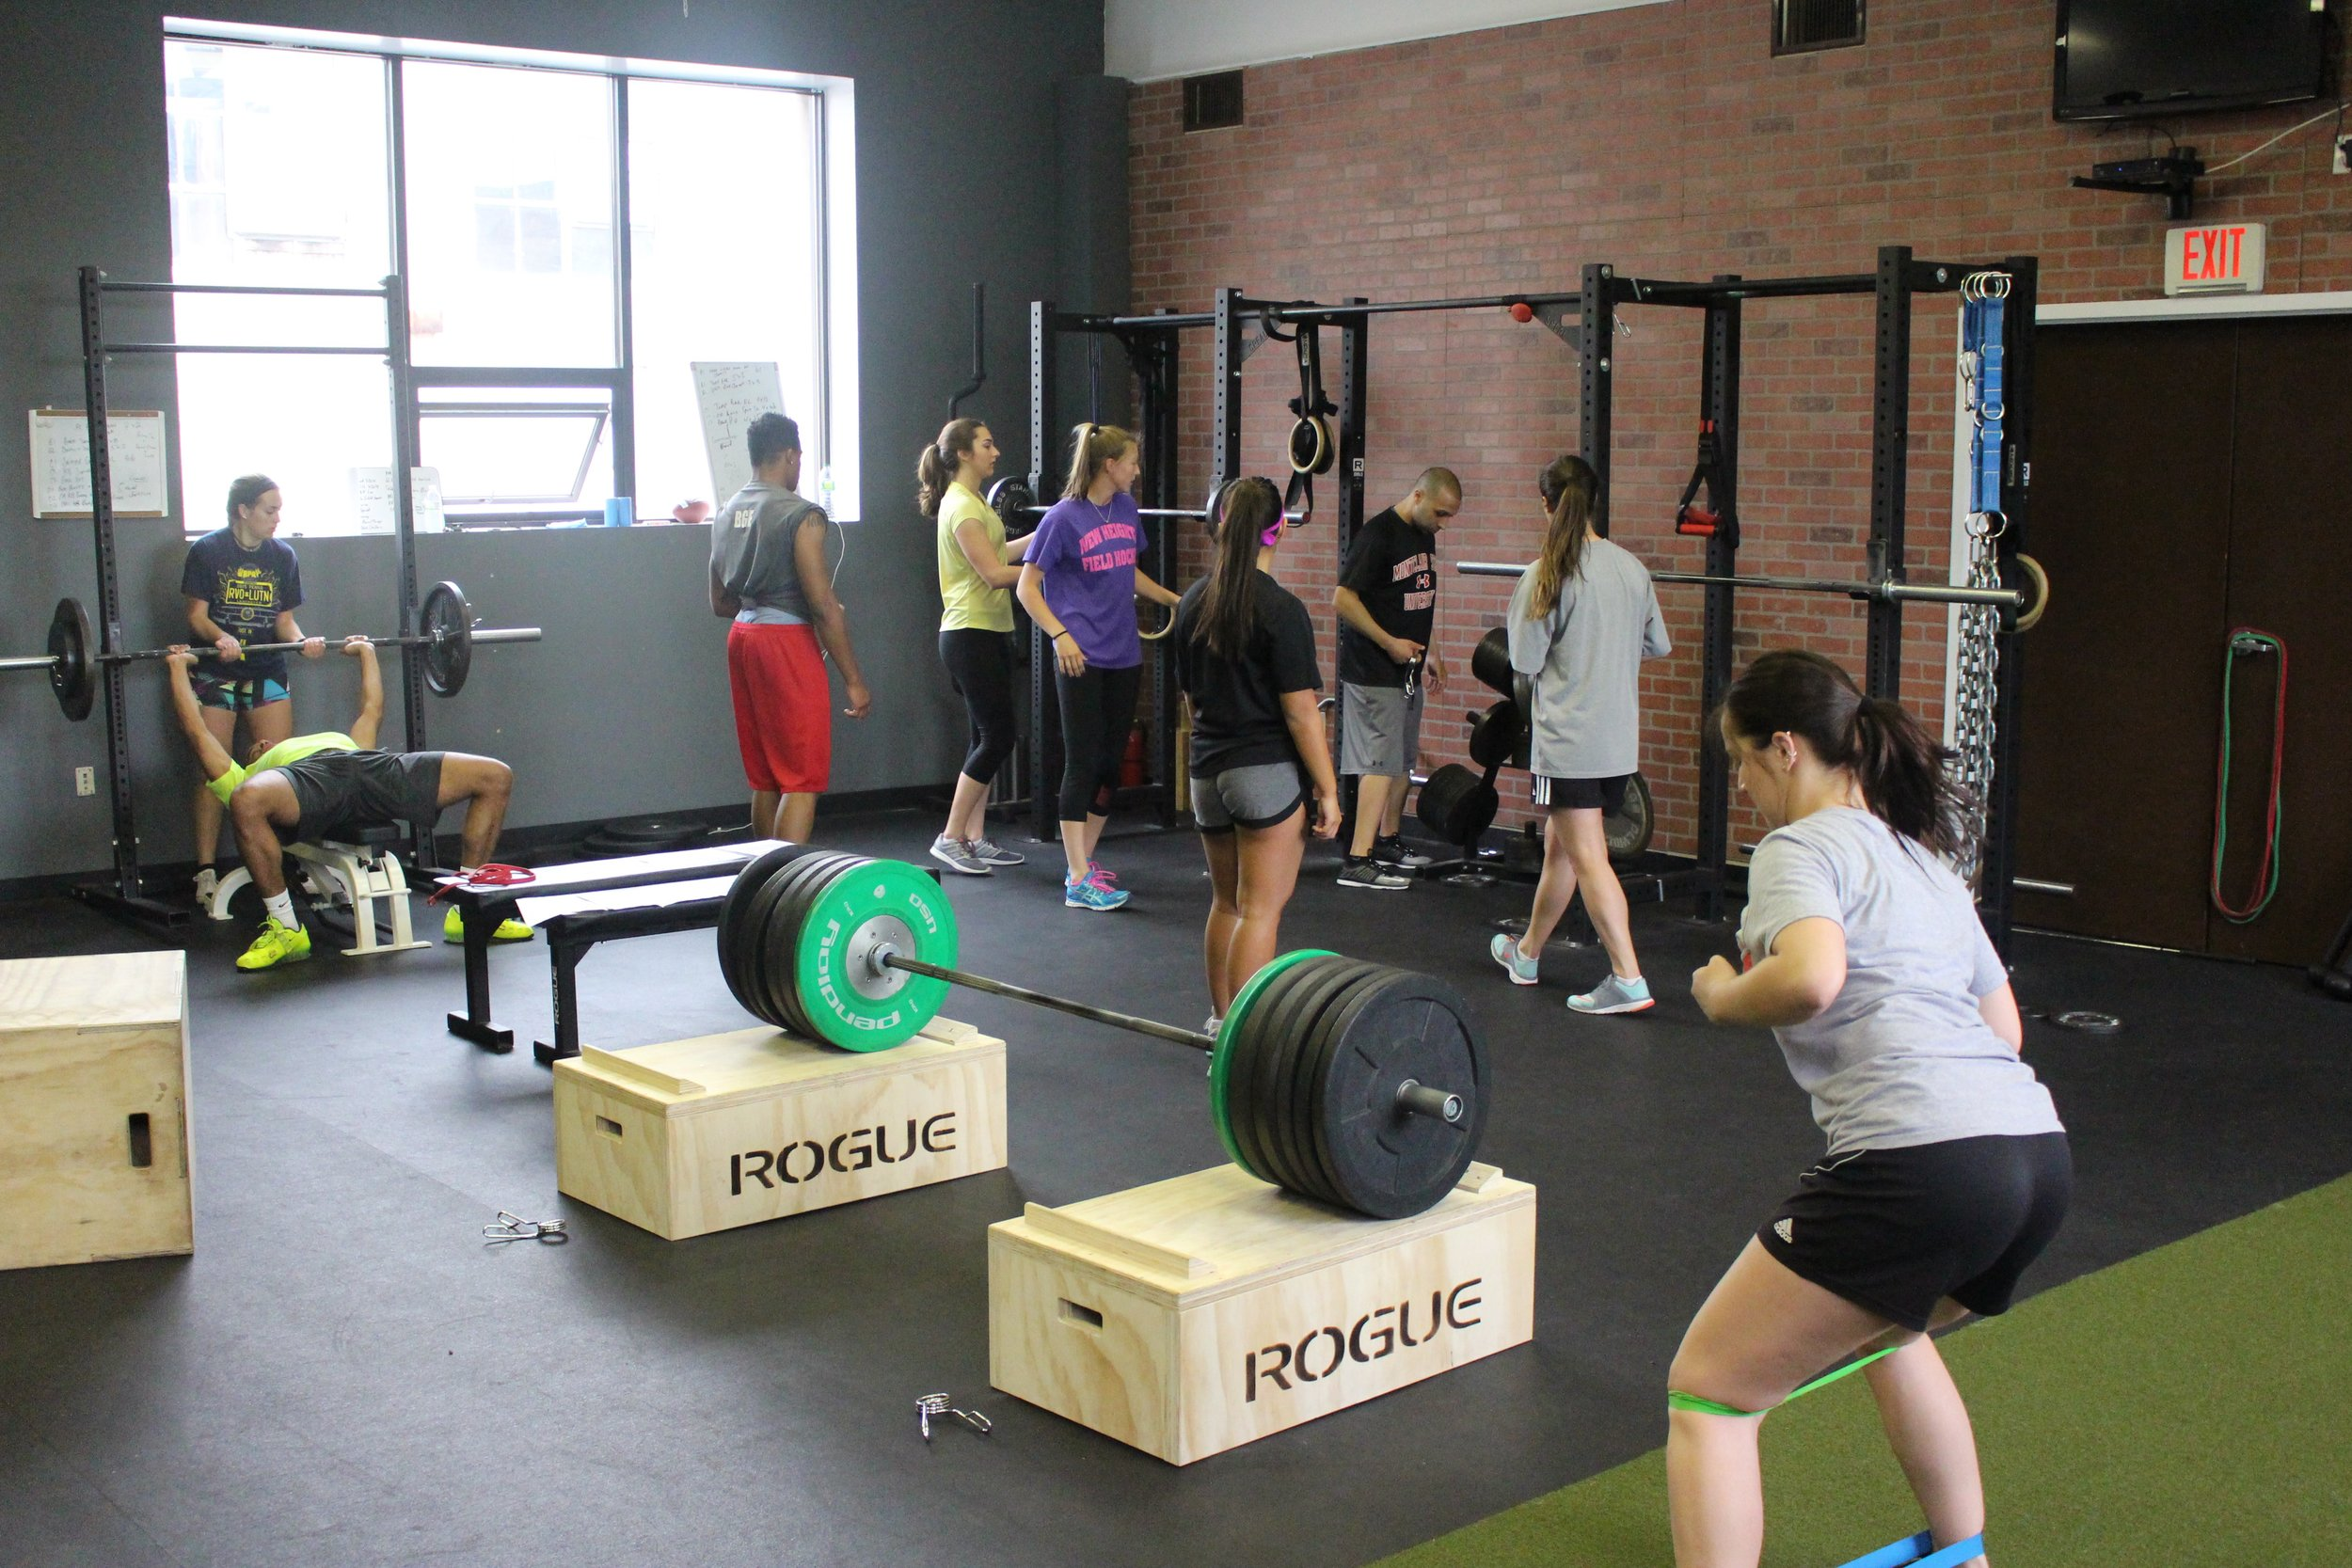 ATHLETES LOOKING TO BUILD STRENGTH, MOVE QUICKER, AND MAKE AN IMPACT ON THEIR TEAM